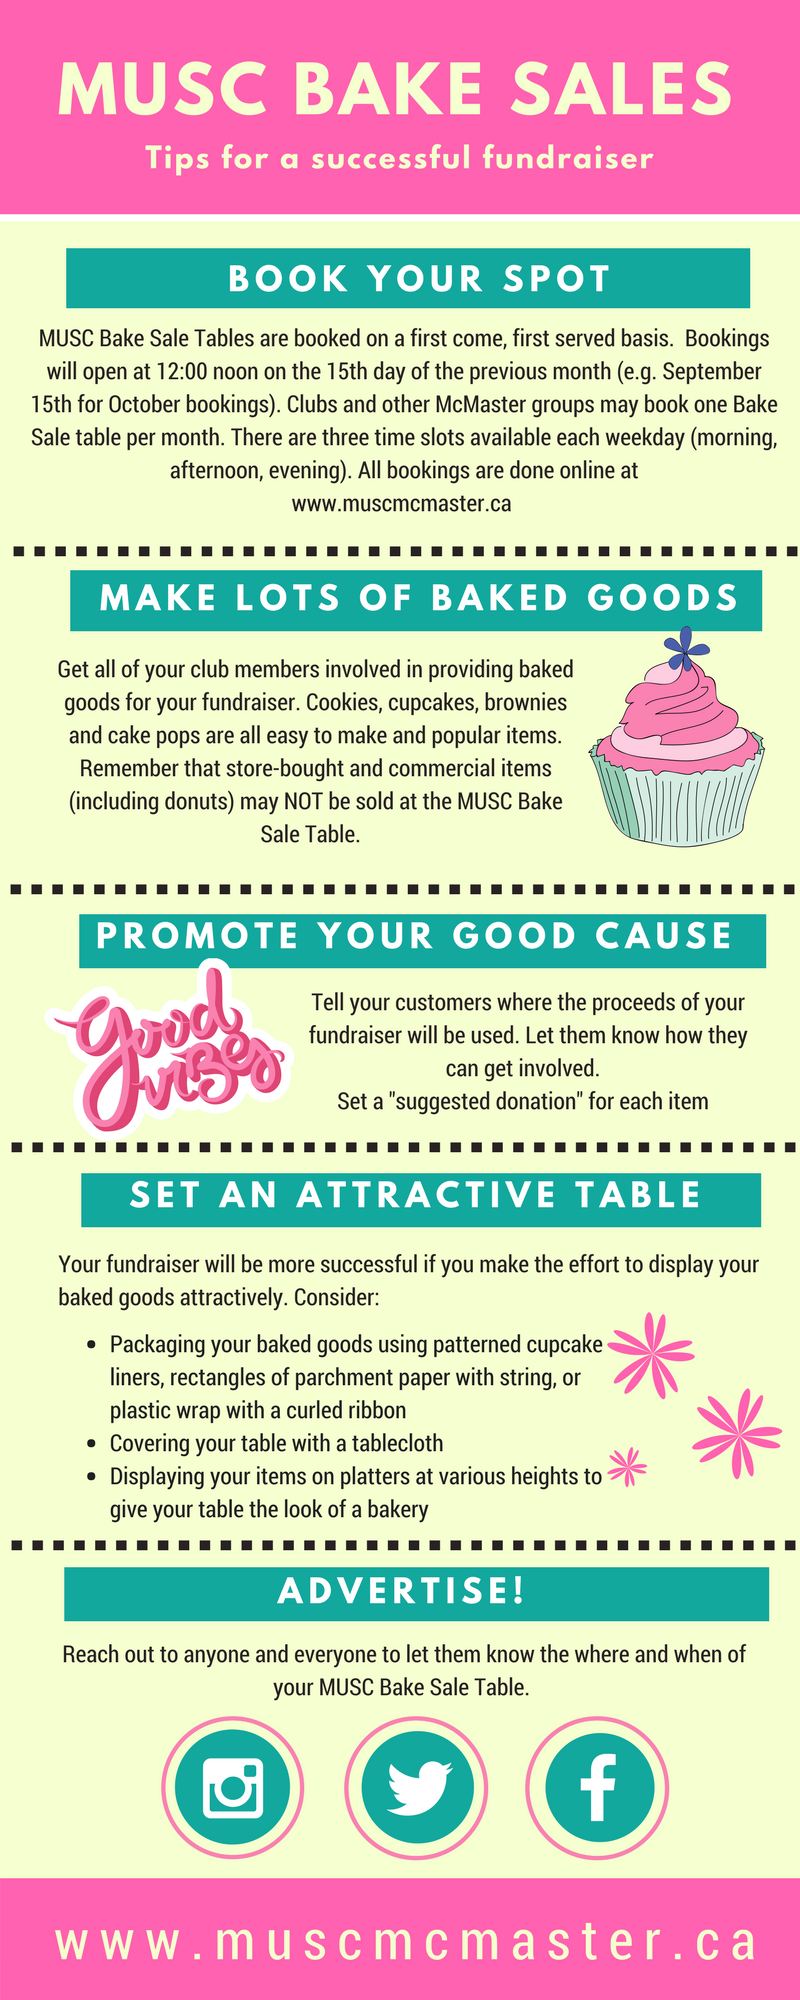 musc bake sale tips